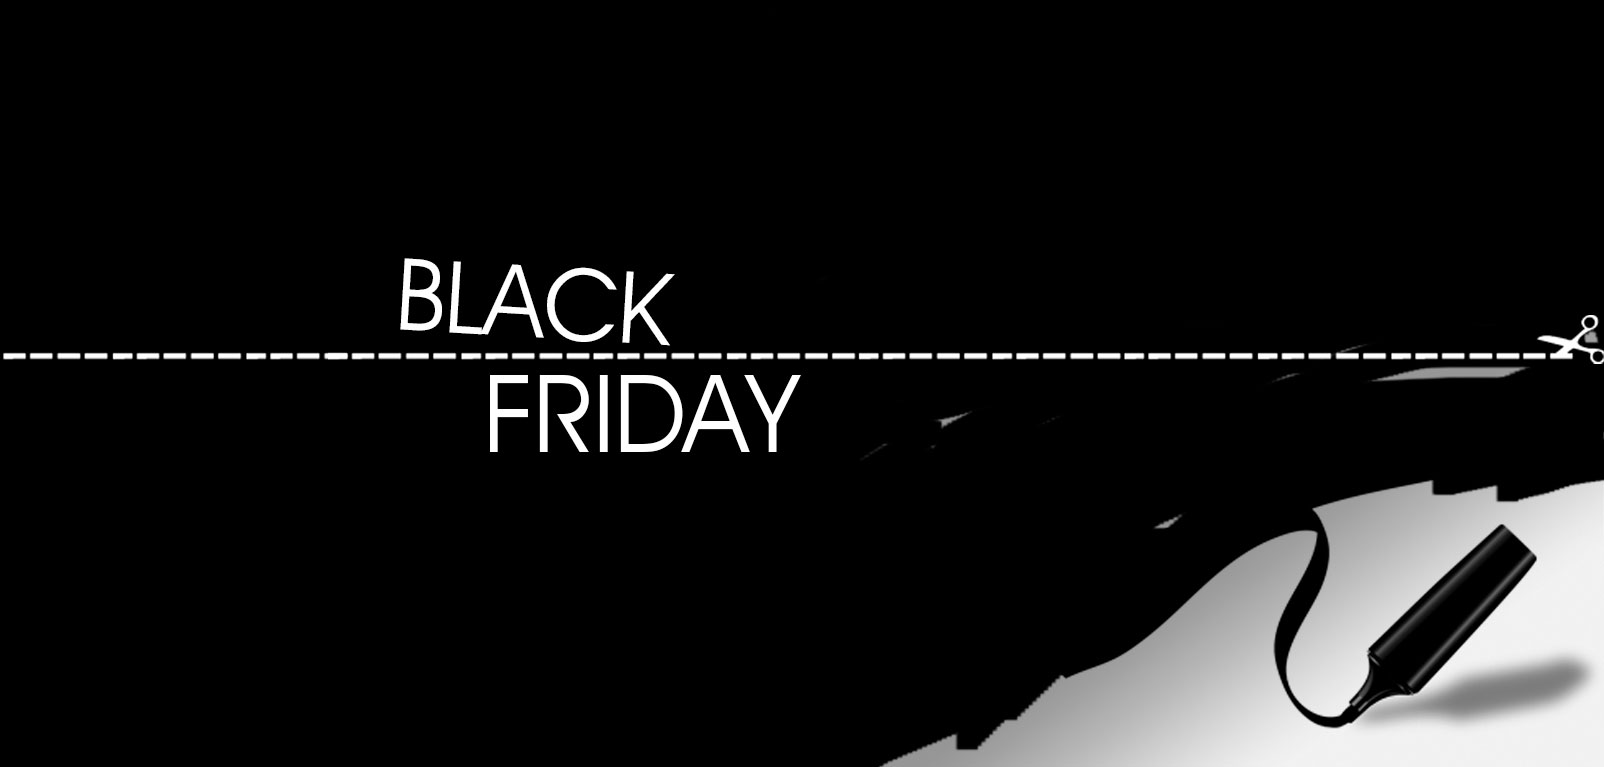 capa-googleplus-black-friday-2013